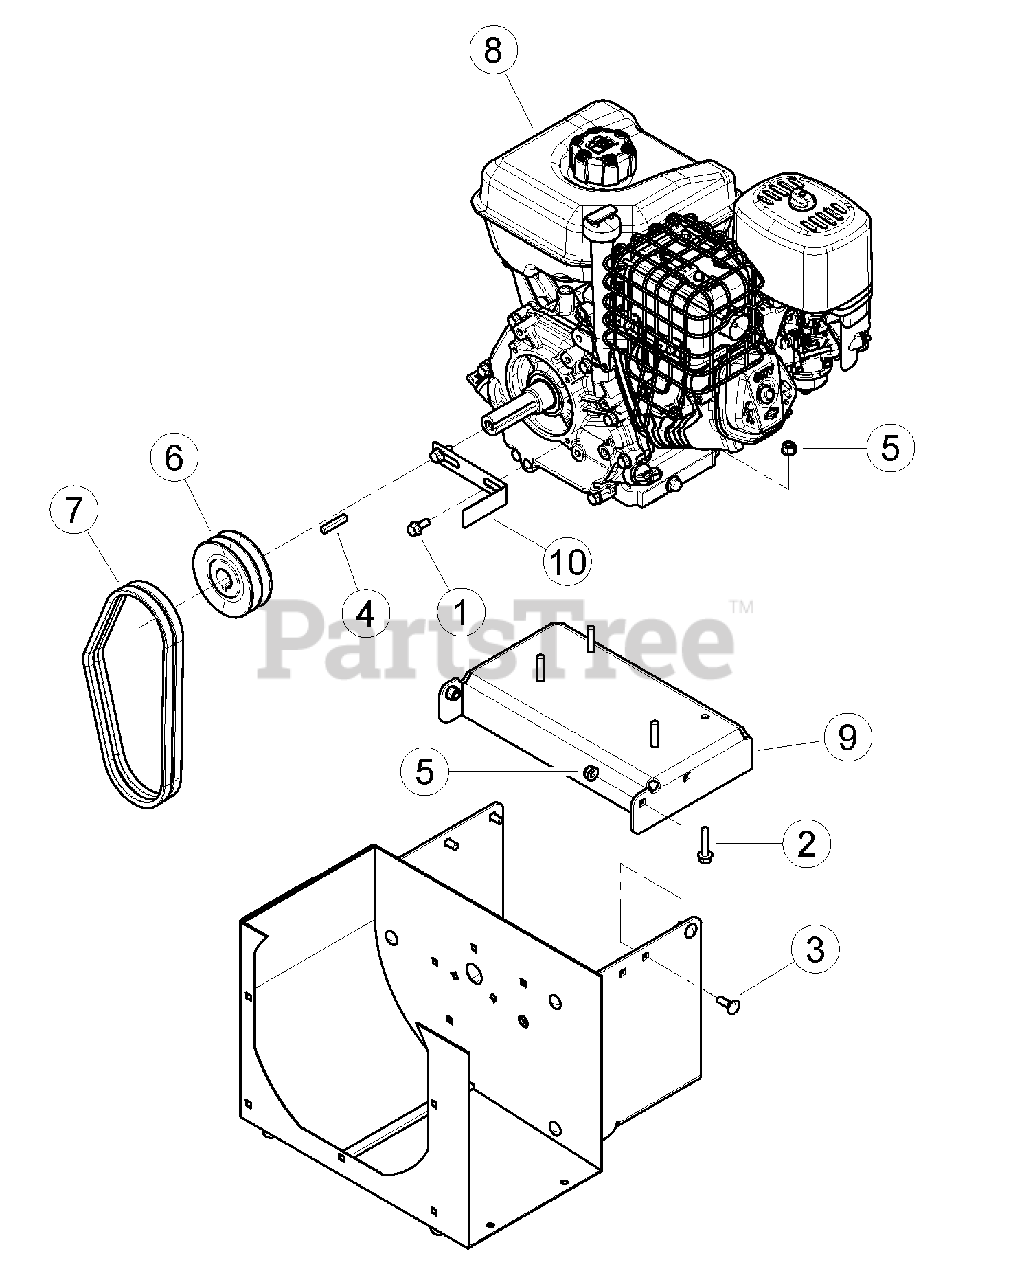 Bear Cat Sc 3420 Bear Cat 3 Chipper Shredder 420cc Briggs Stratton Sn G01443 Above Engine Parts Lookup With Diagrams Partstree